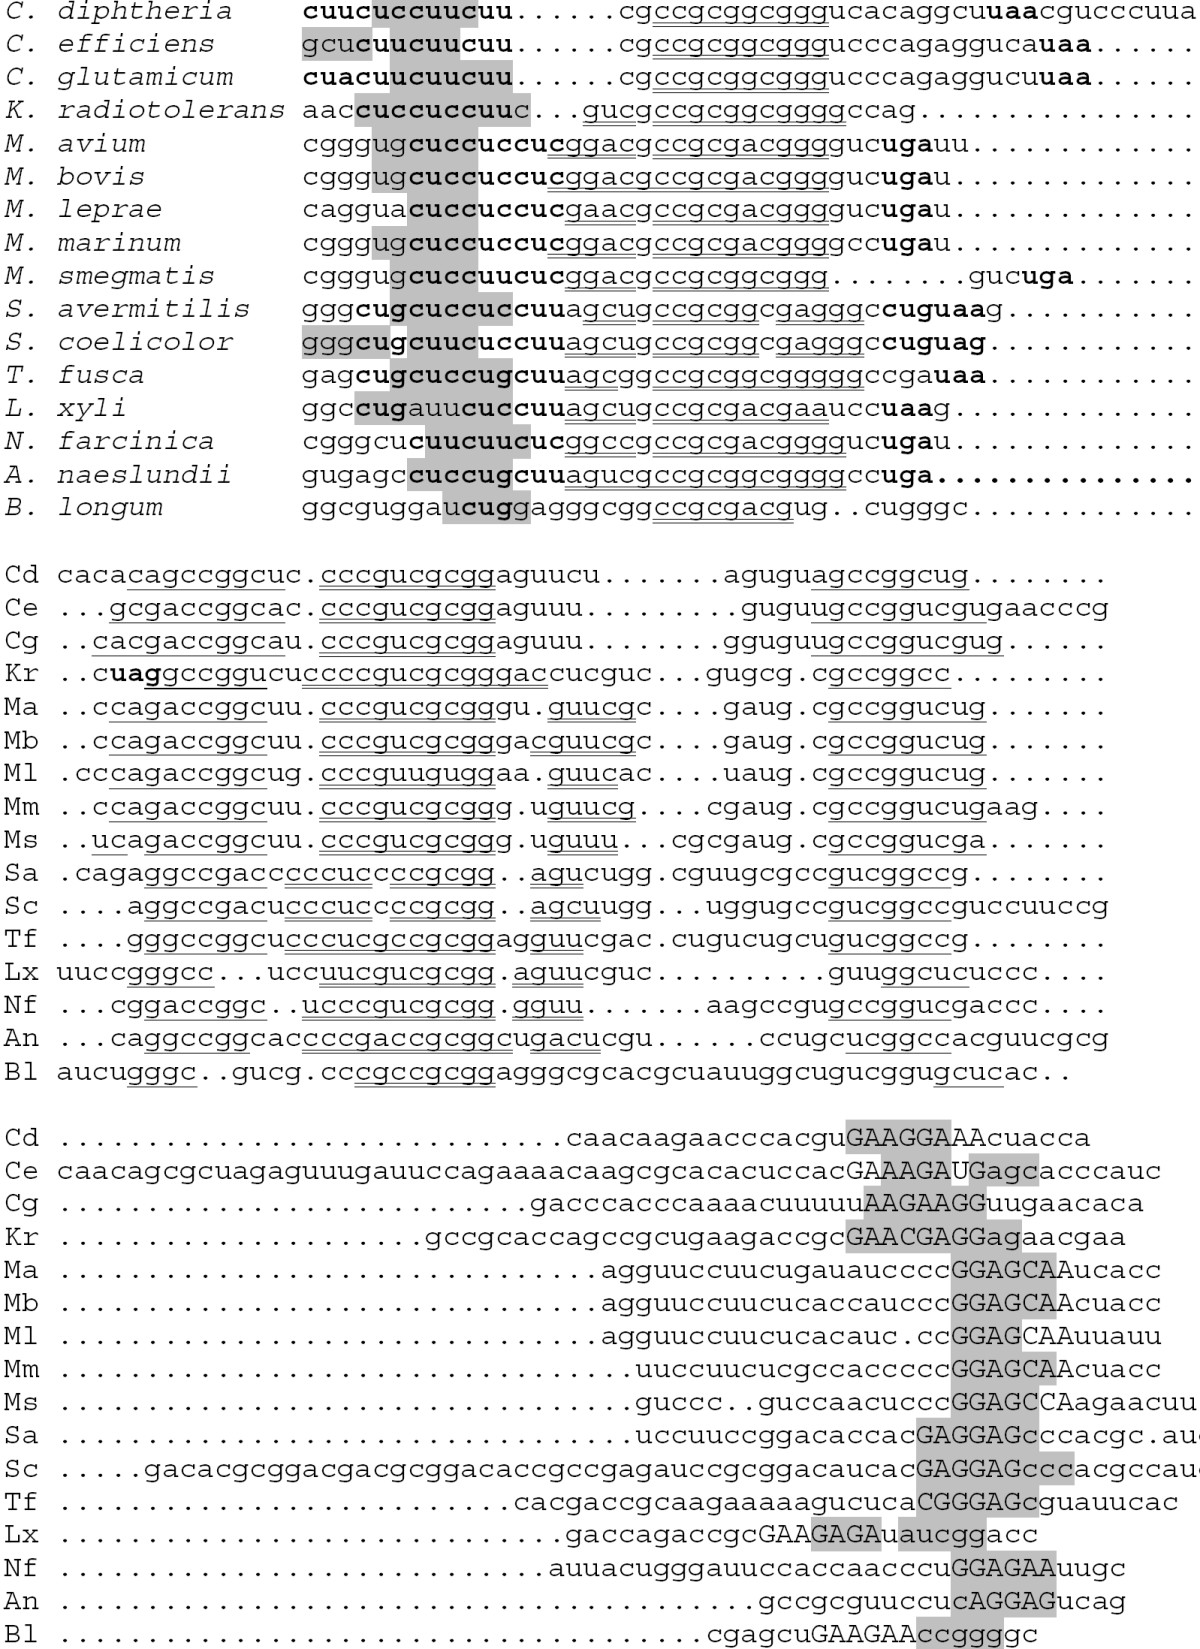 https://static-content.springer.com/image/art%3A10.1186%2F1471-2180-5-54/MediaObjects/12866_2005_Article_201_Fig5_HTML.jpg